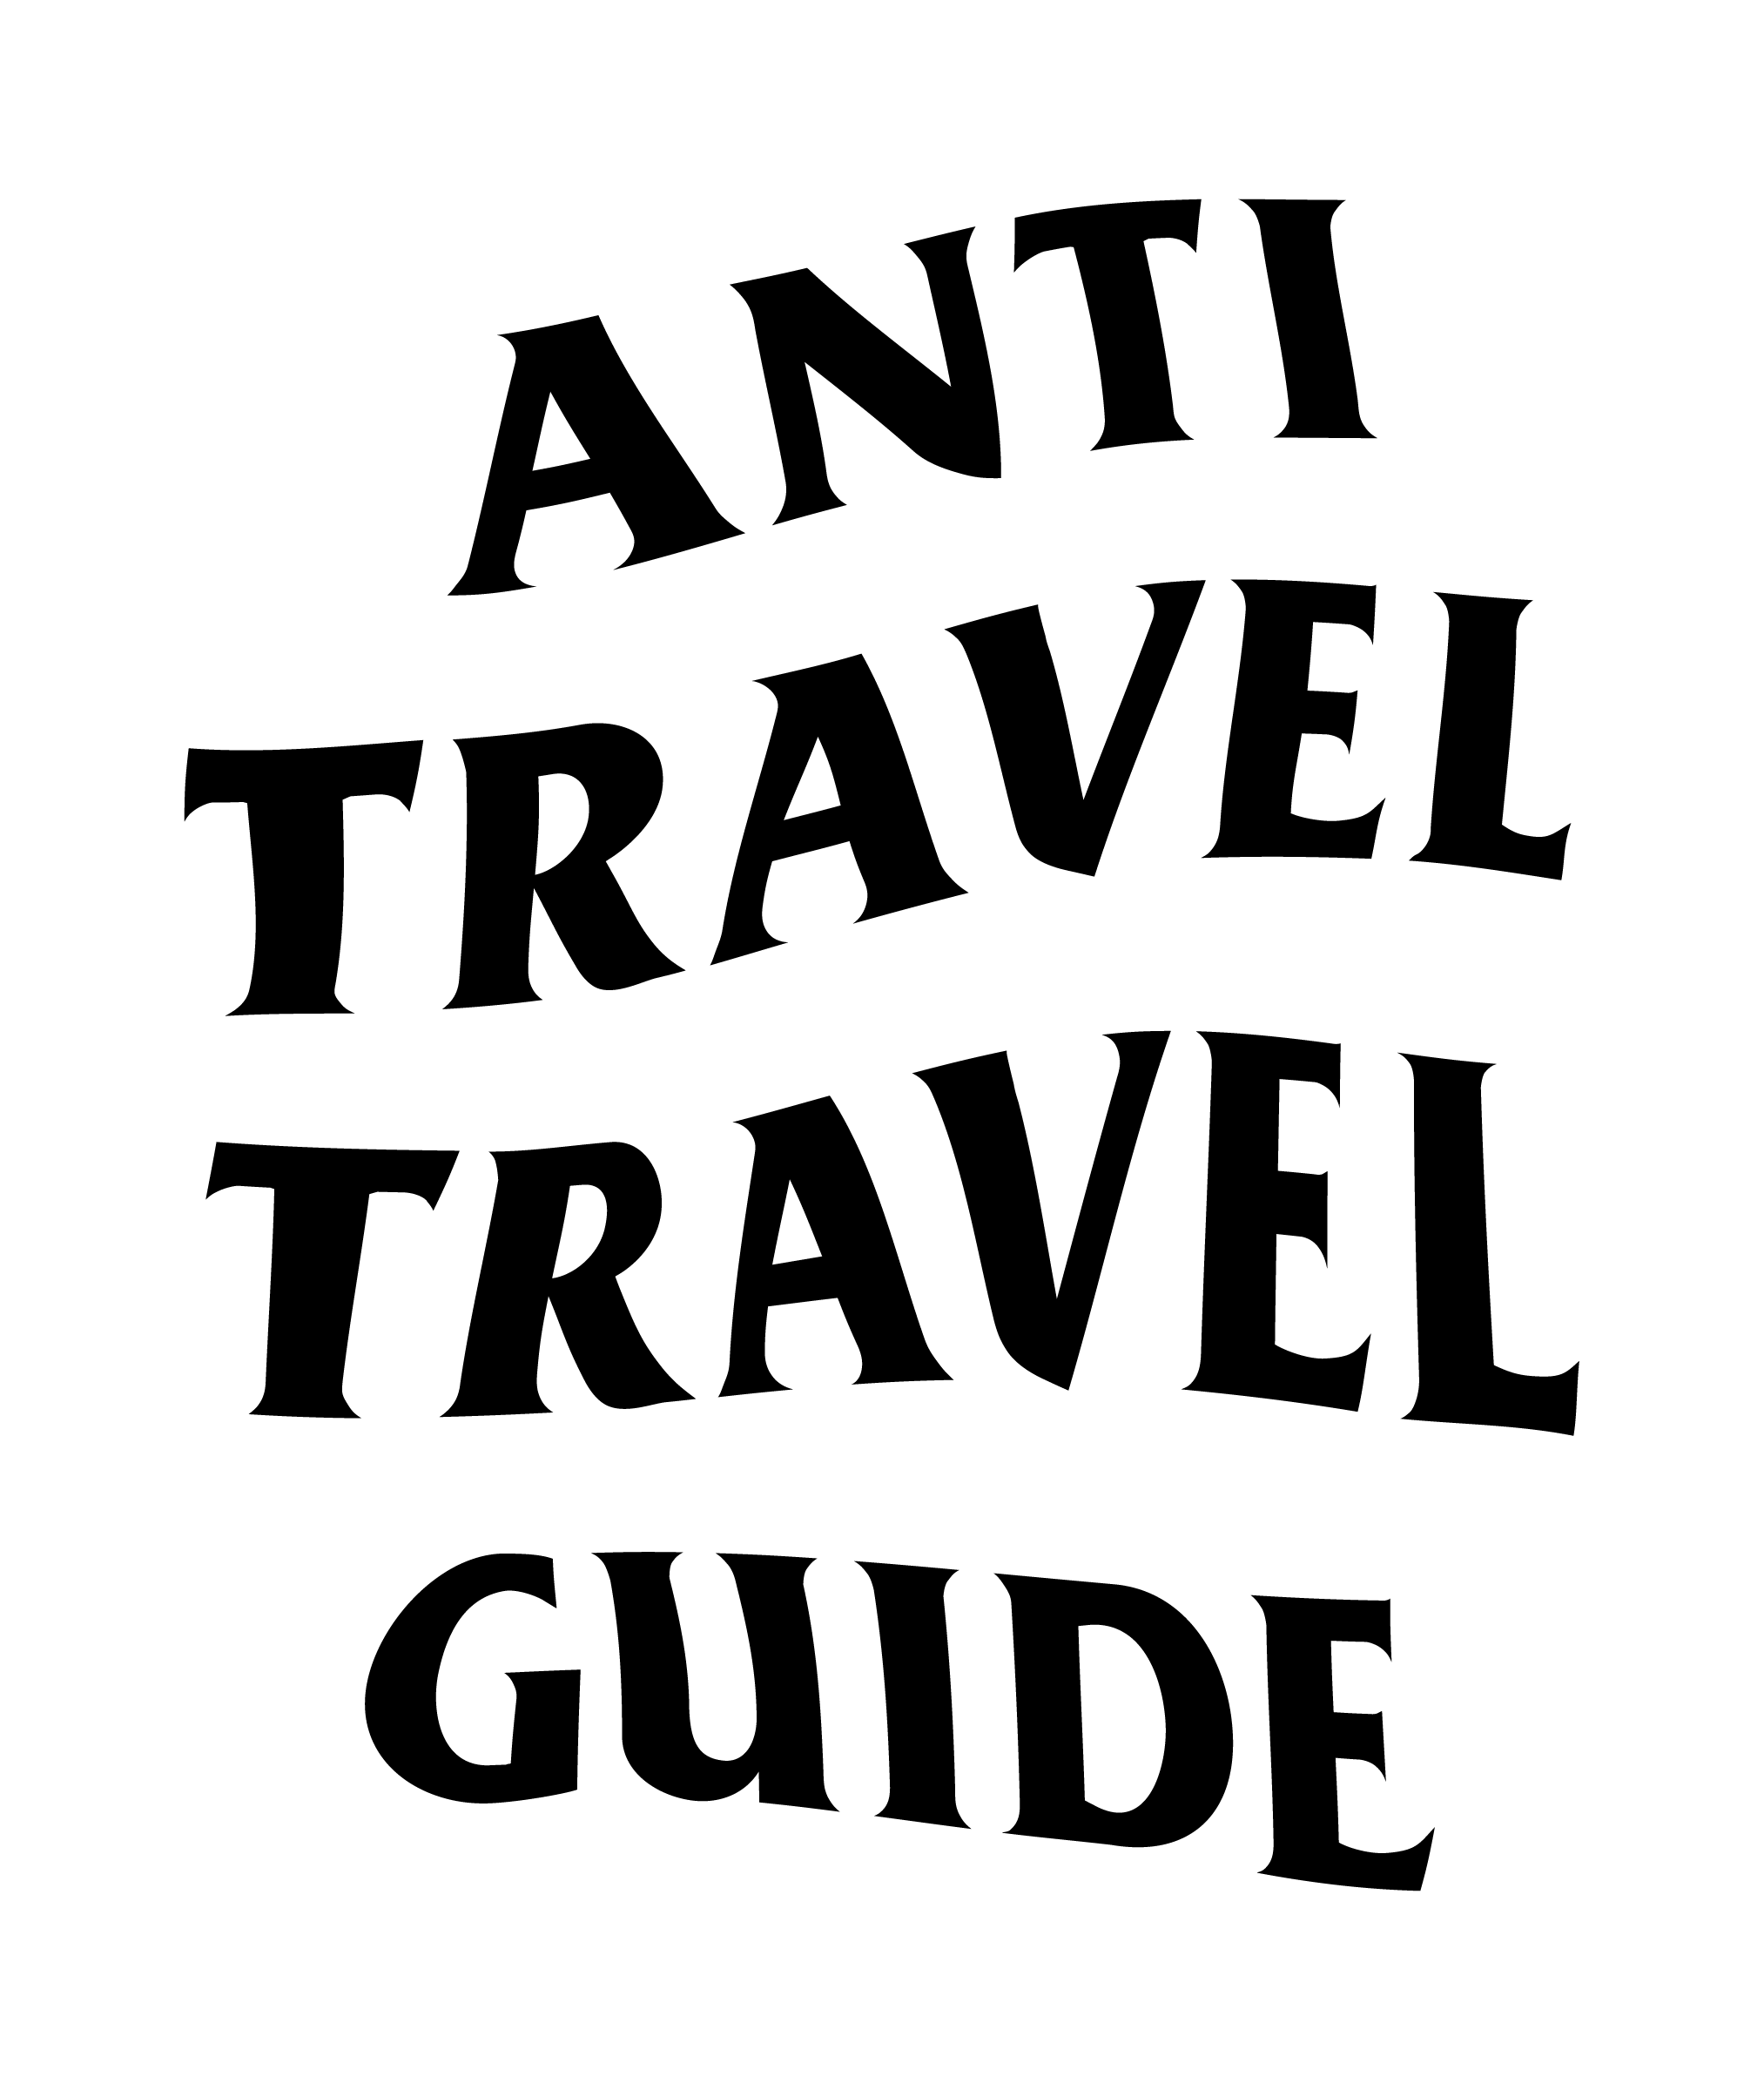 Folio Travel's Anti Travel Travel Guide